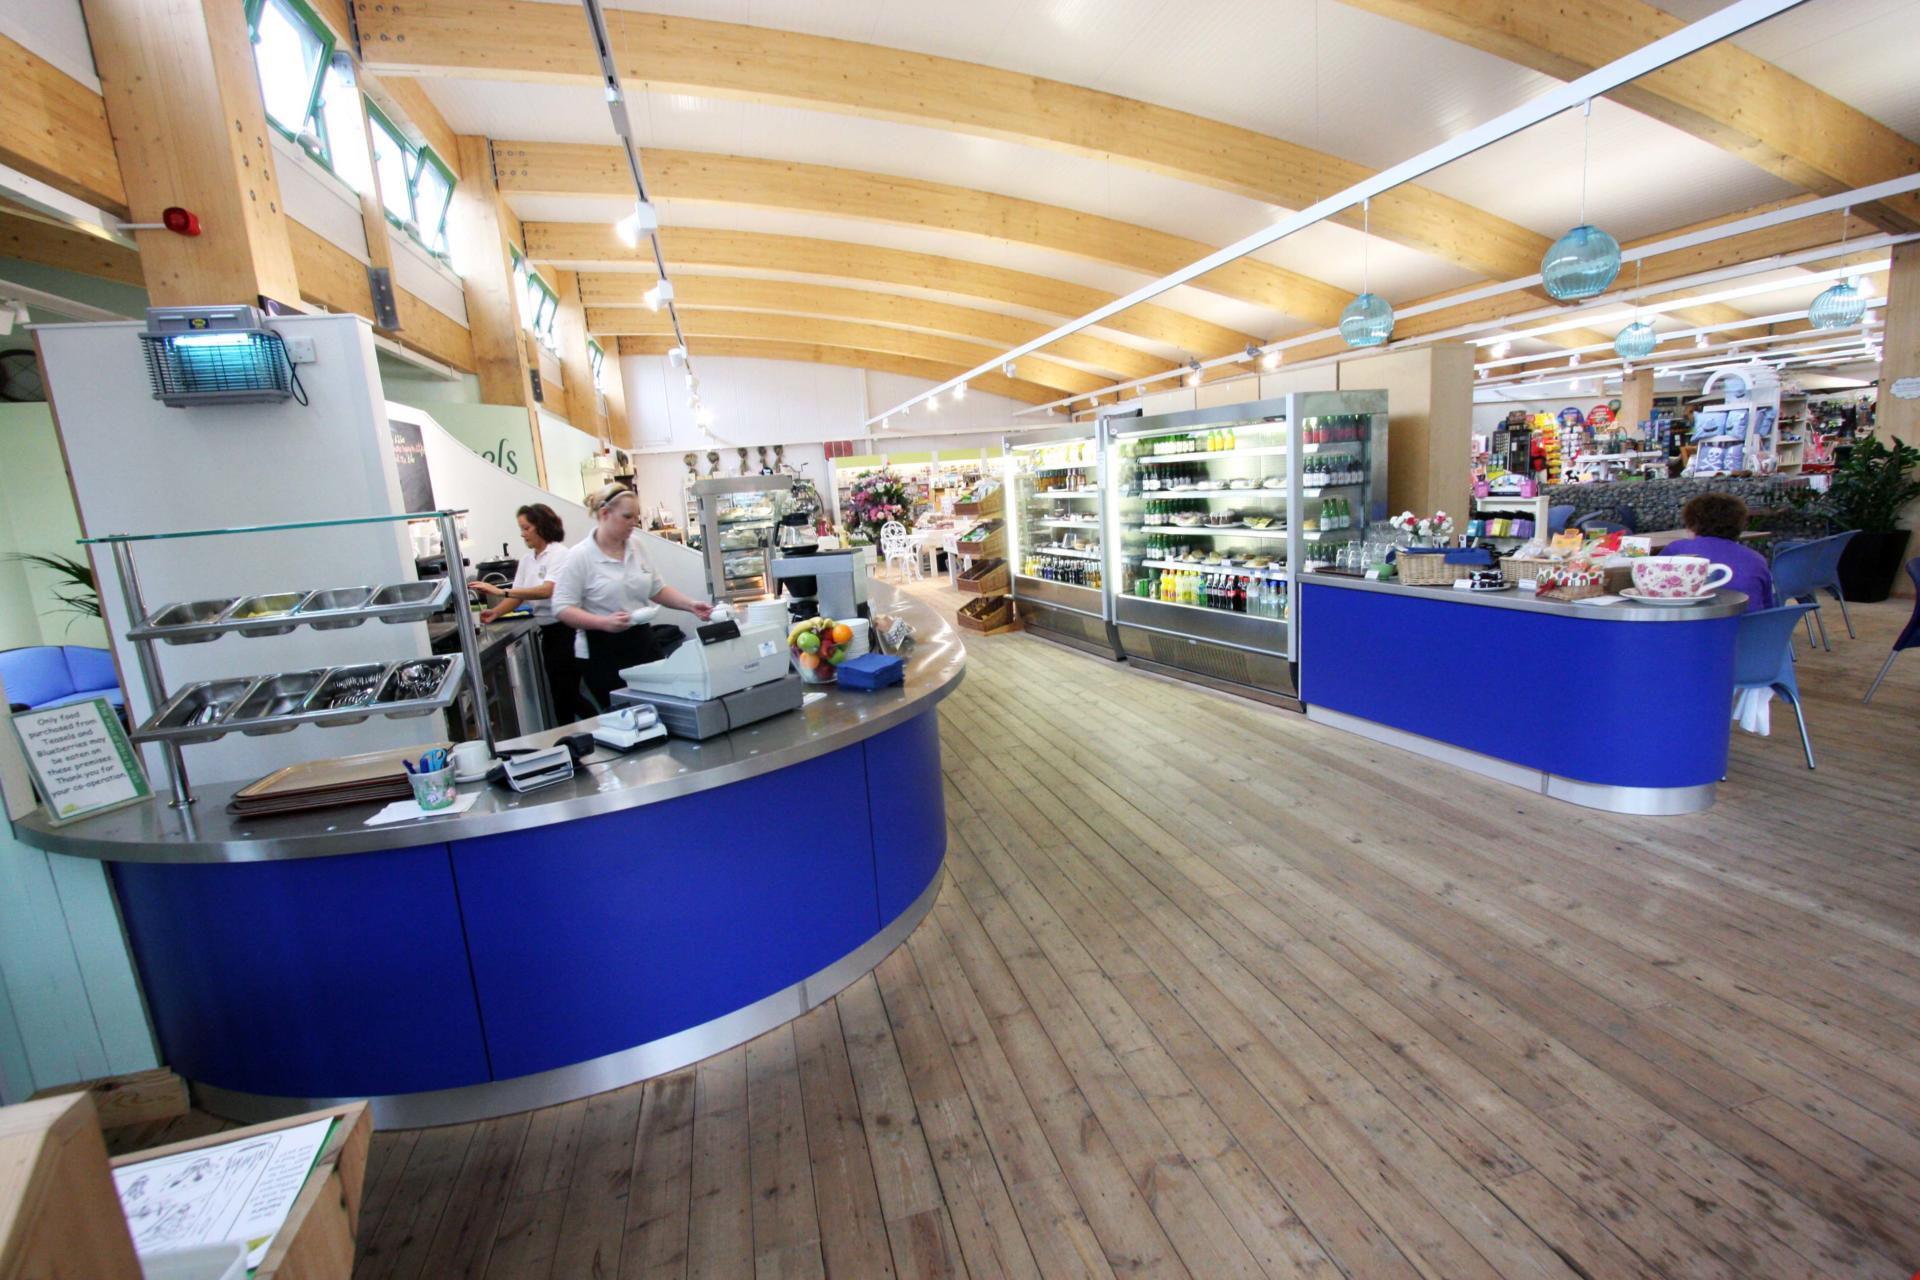 Coolings_Nursery_Knockholt_Kent_Front_of_house_Servery_Food Display_spacecatering_6